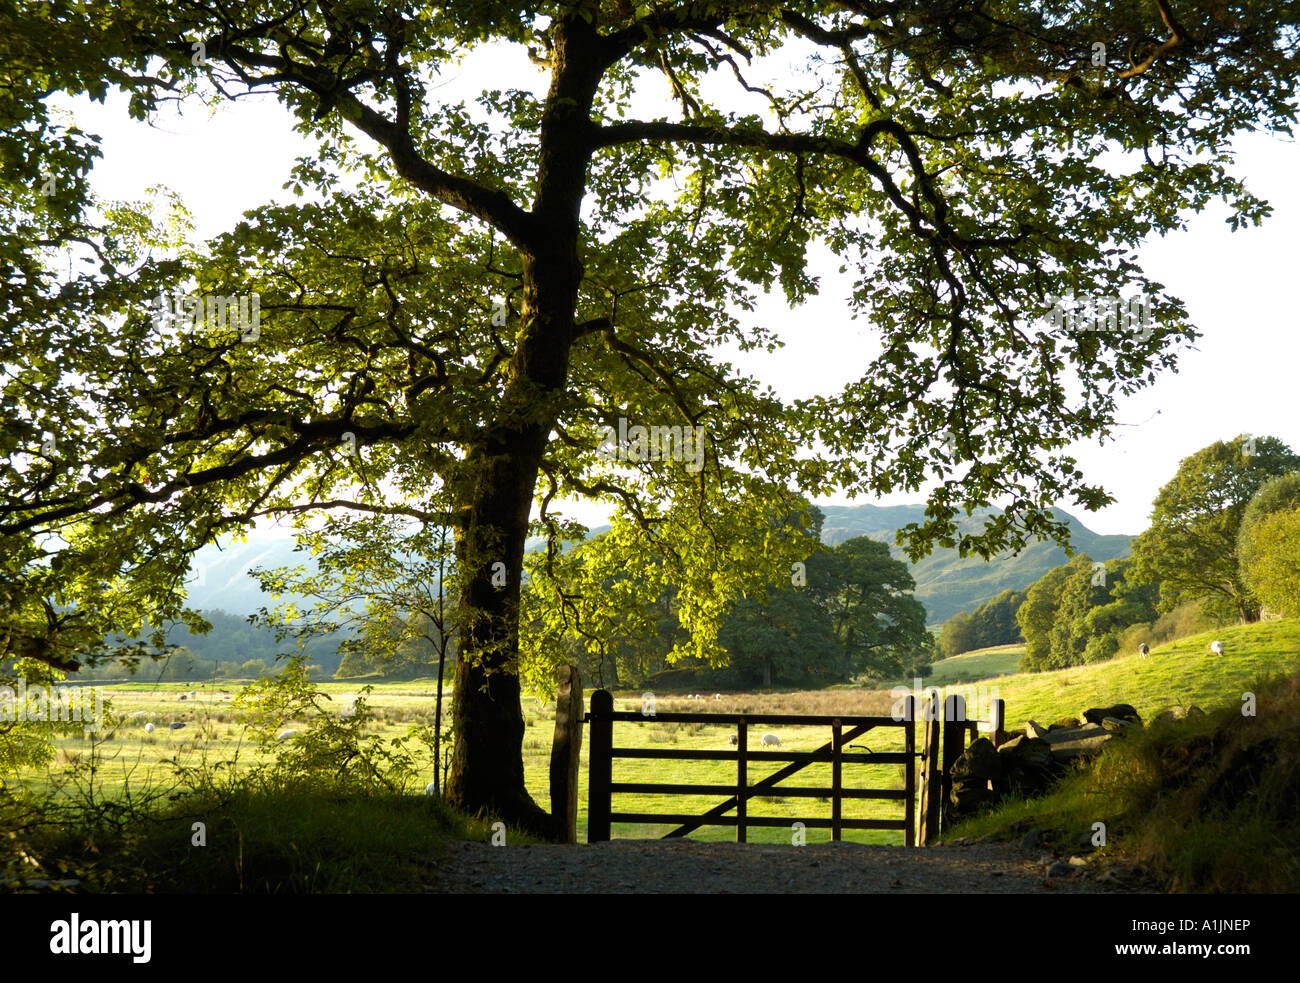 Tree and gate near Elter Water in the Lake District, Cumbria, England Stock Photo